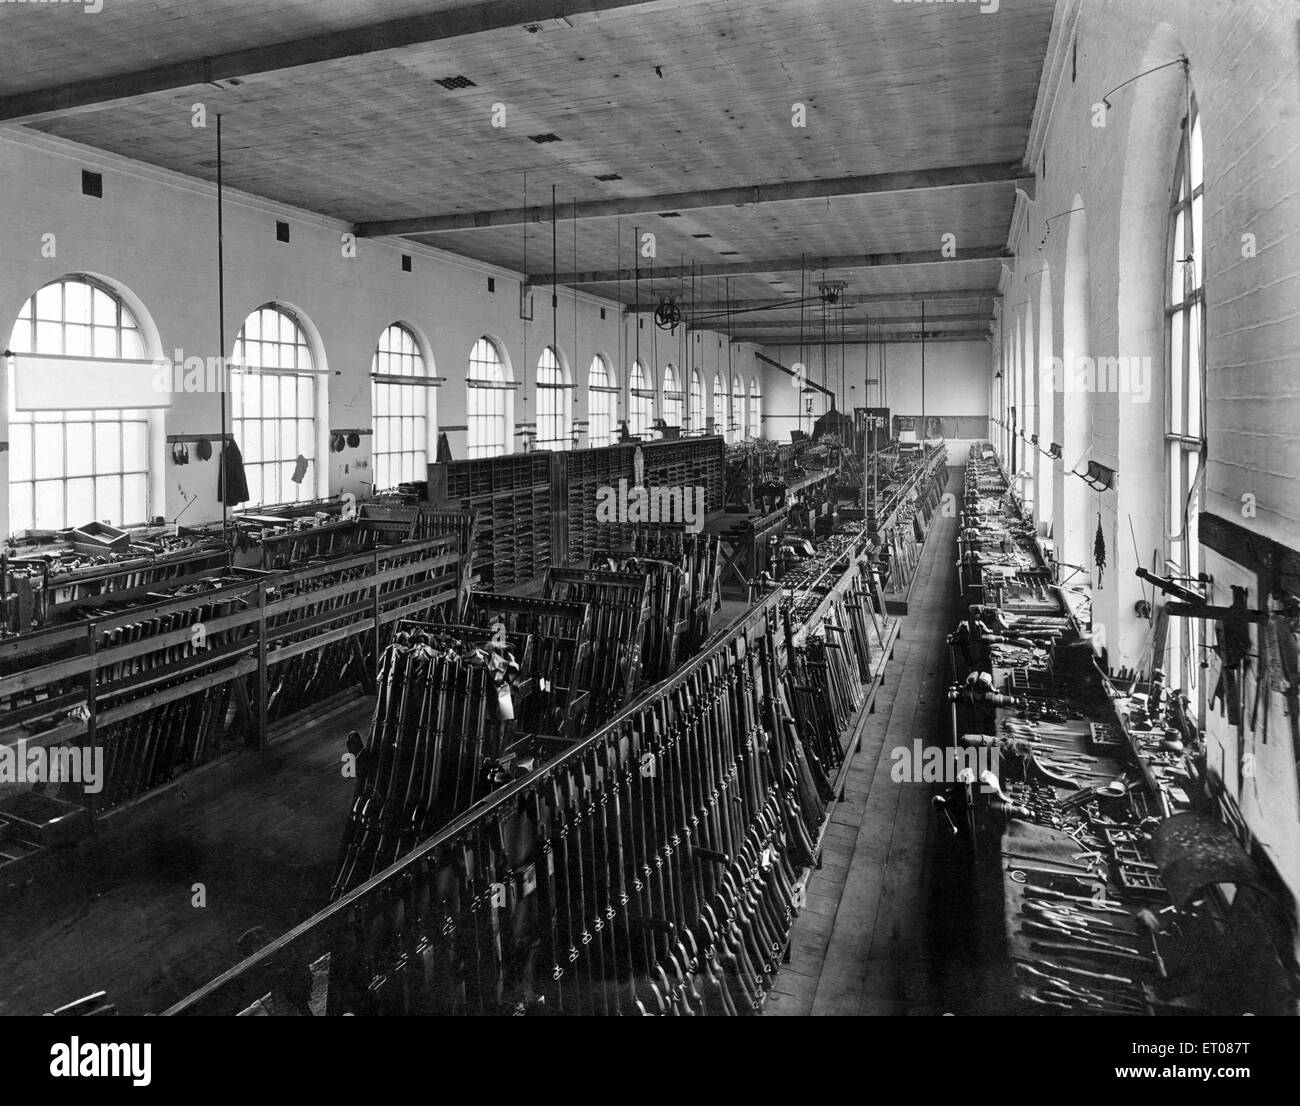 Interior of the Birmingham Small Arms Company Limited (BSA), Circa 1930s - Stock Image